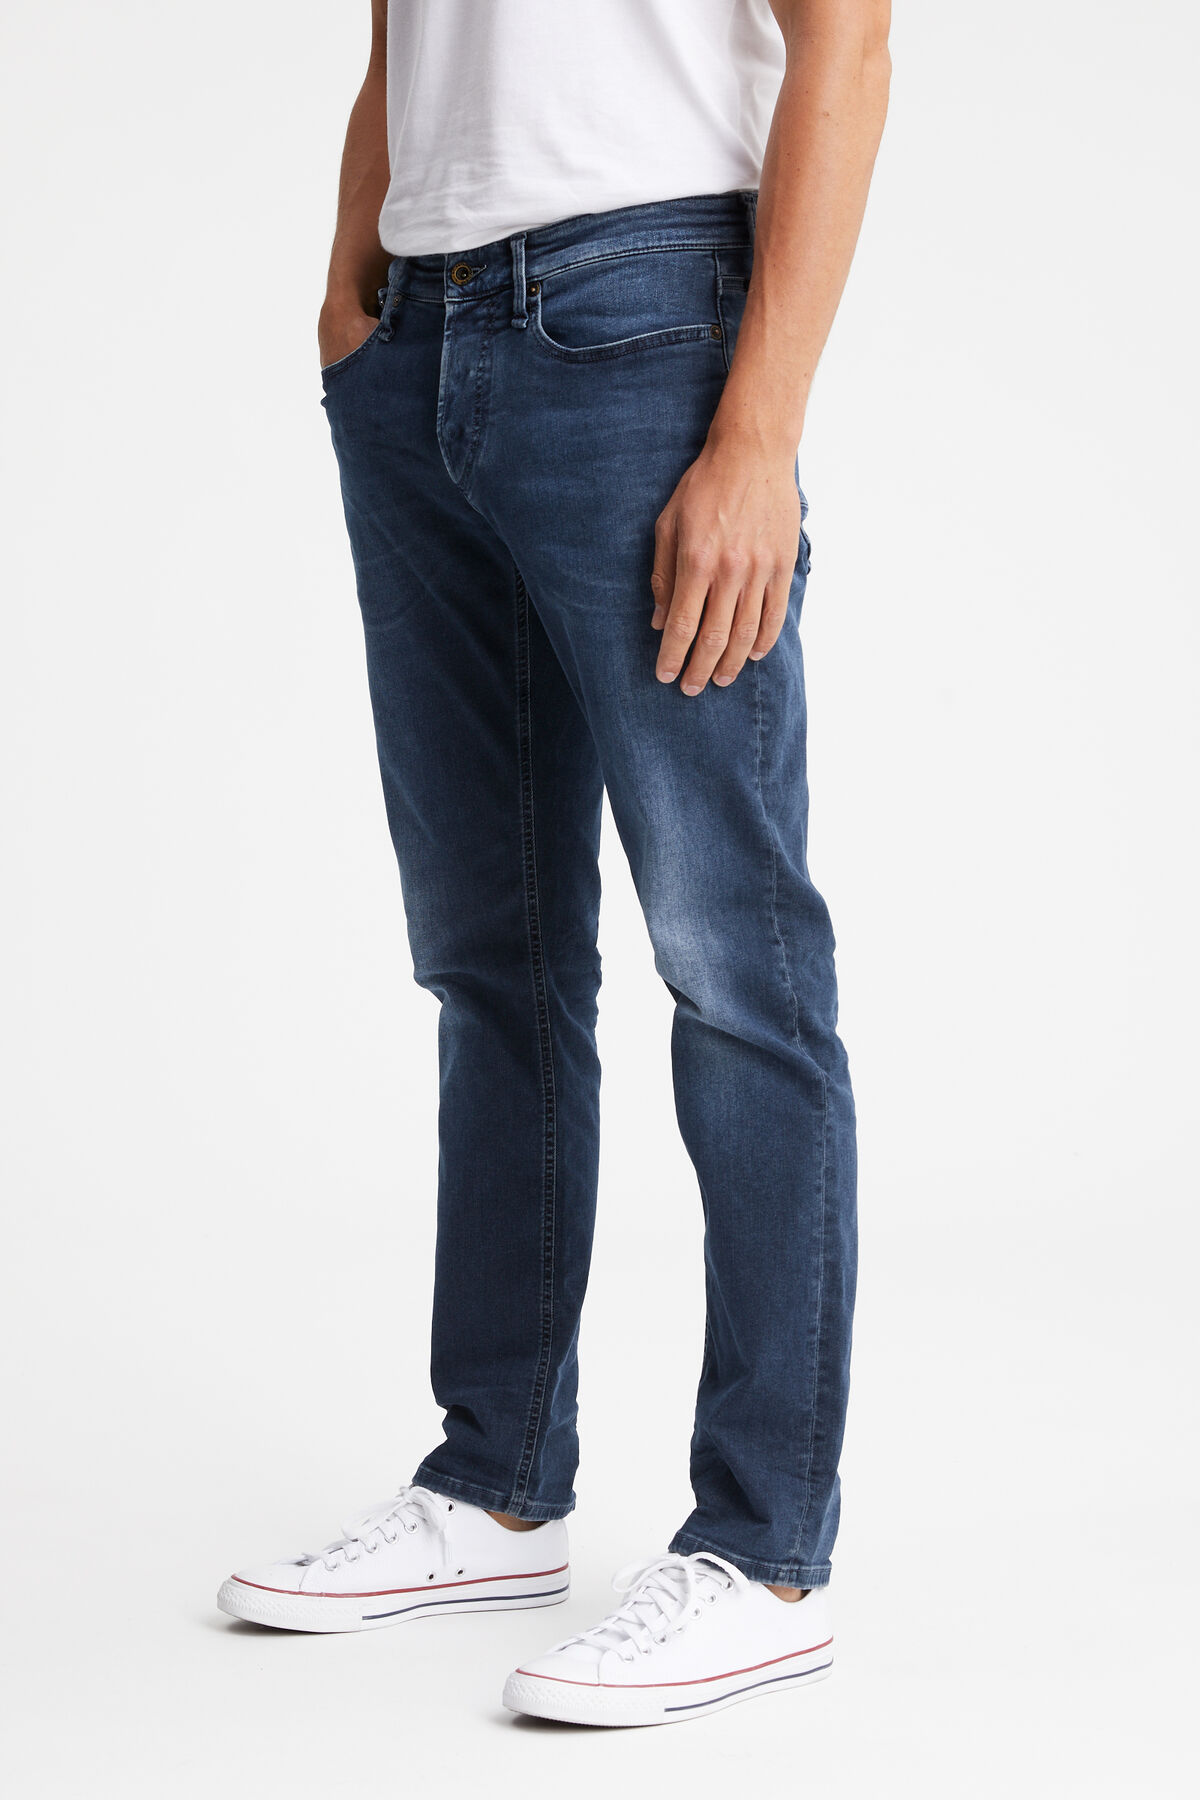 RAZOR Dark wash, light fade - Slim Fit